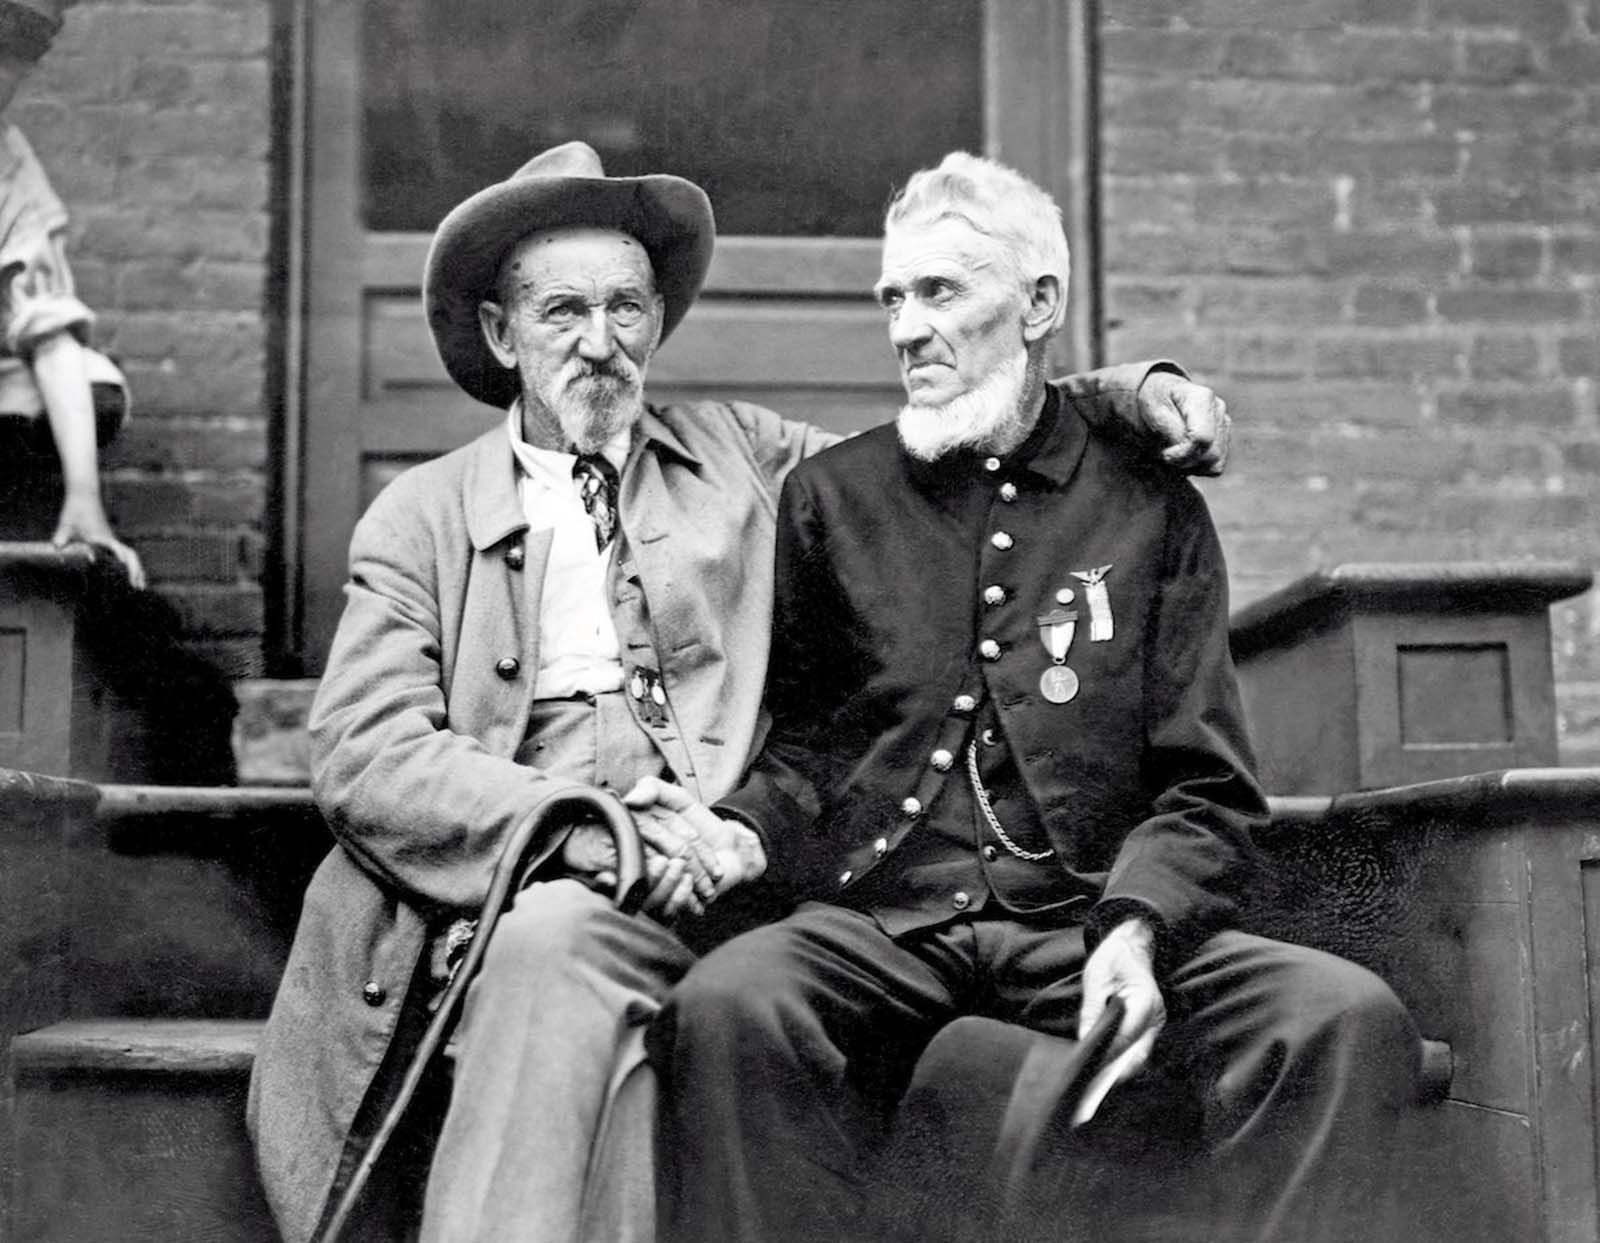 A veteran of the Union Army shakes hands with a Confederate veteran at the Gettysburg celebration, in Pennsylvania. 1913.